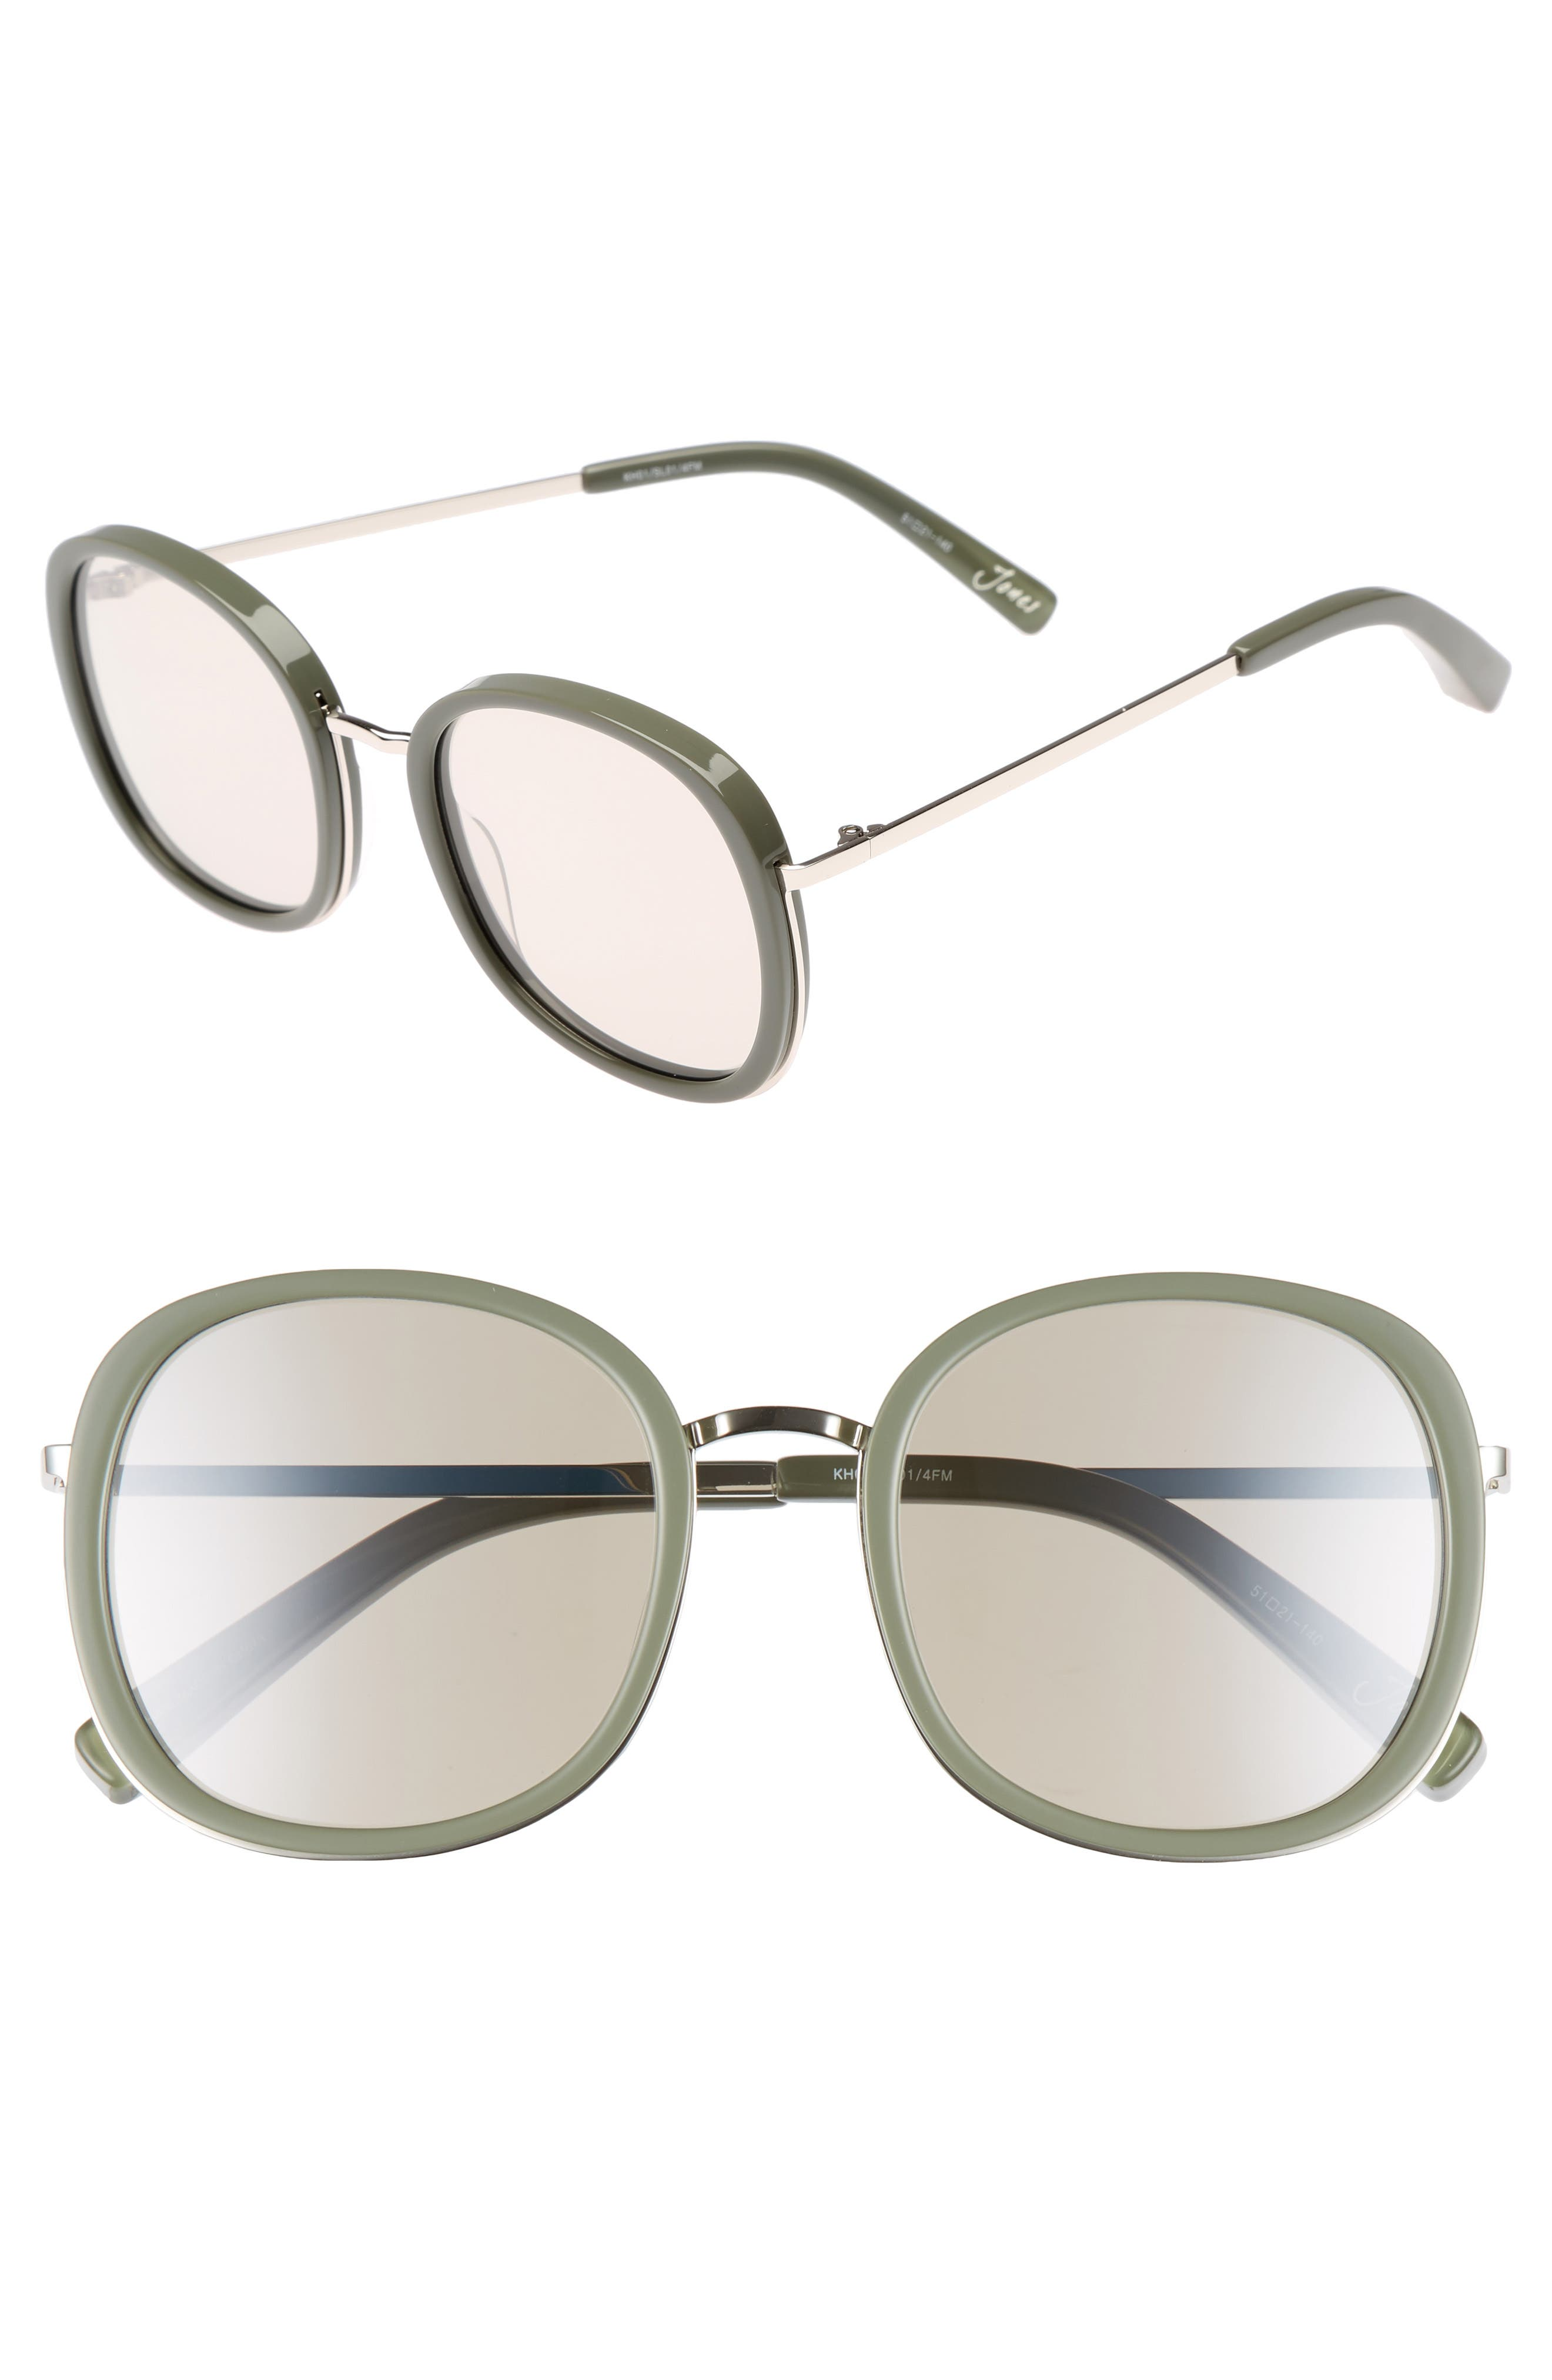 Alternate Image 1 Selected - Elizabeth and James Jones 51mm Round Sunglasses